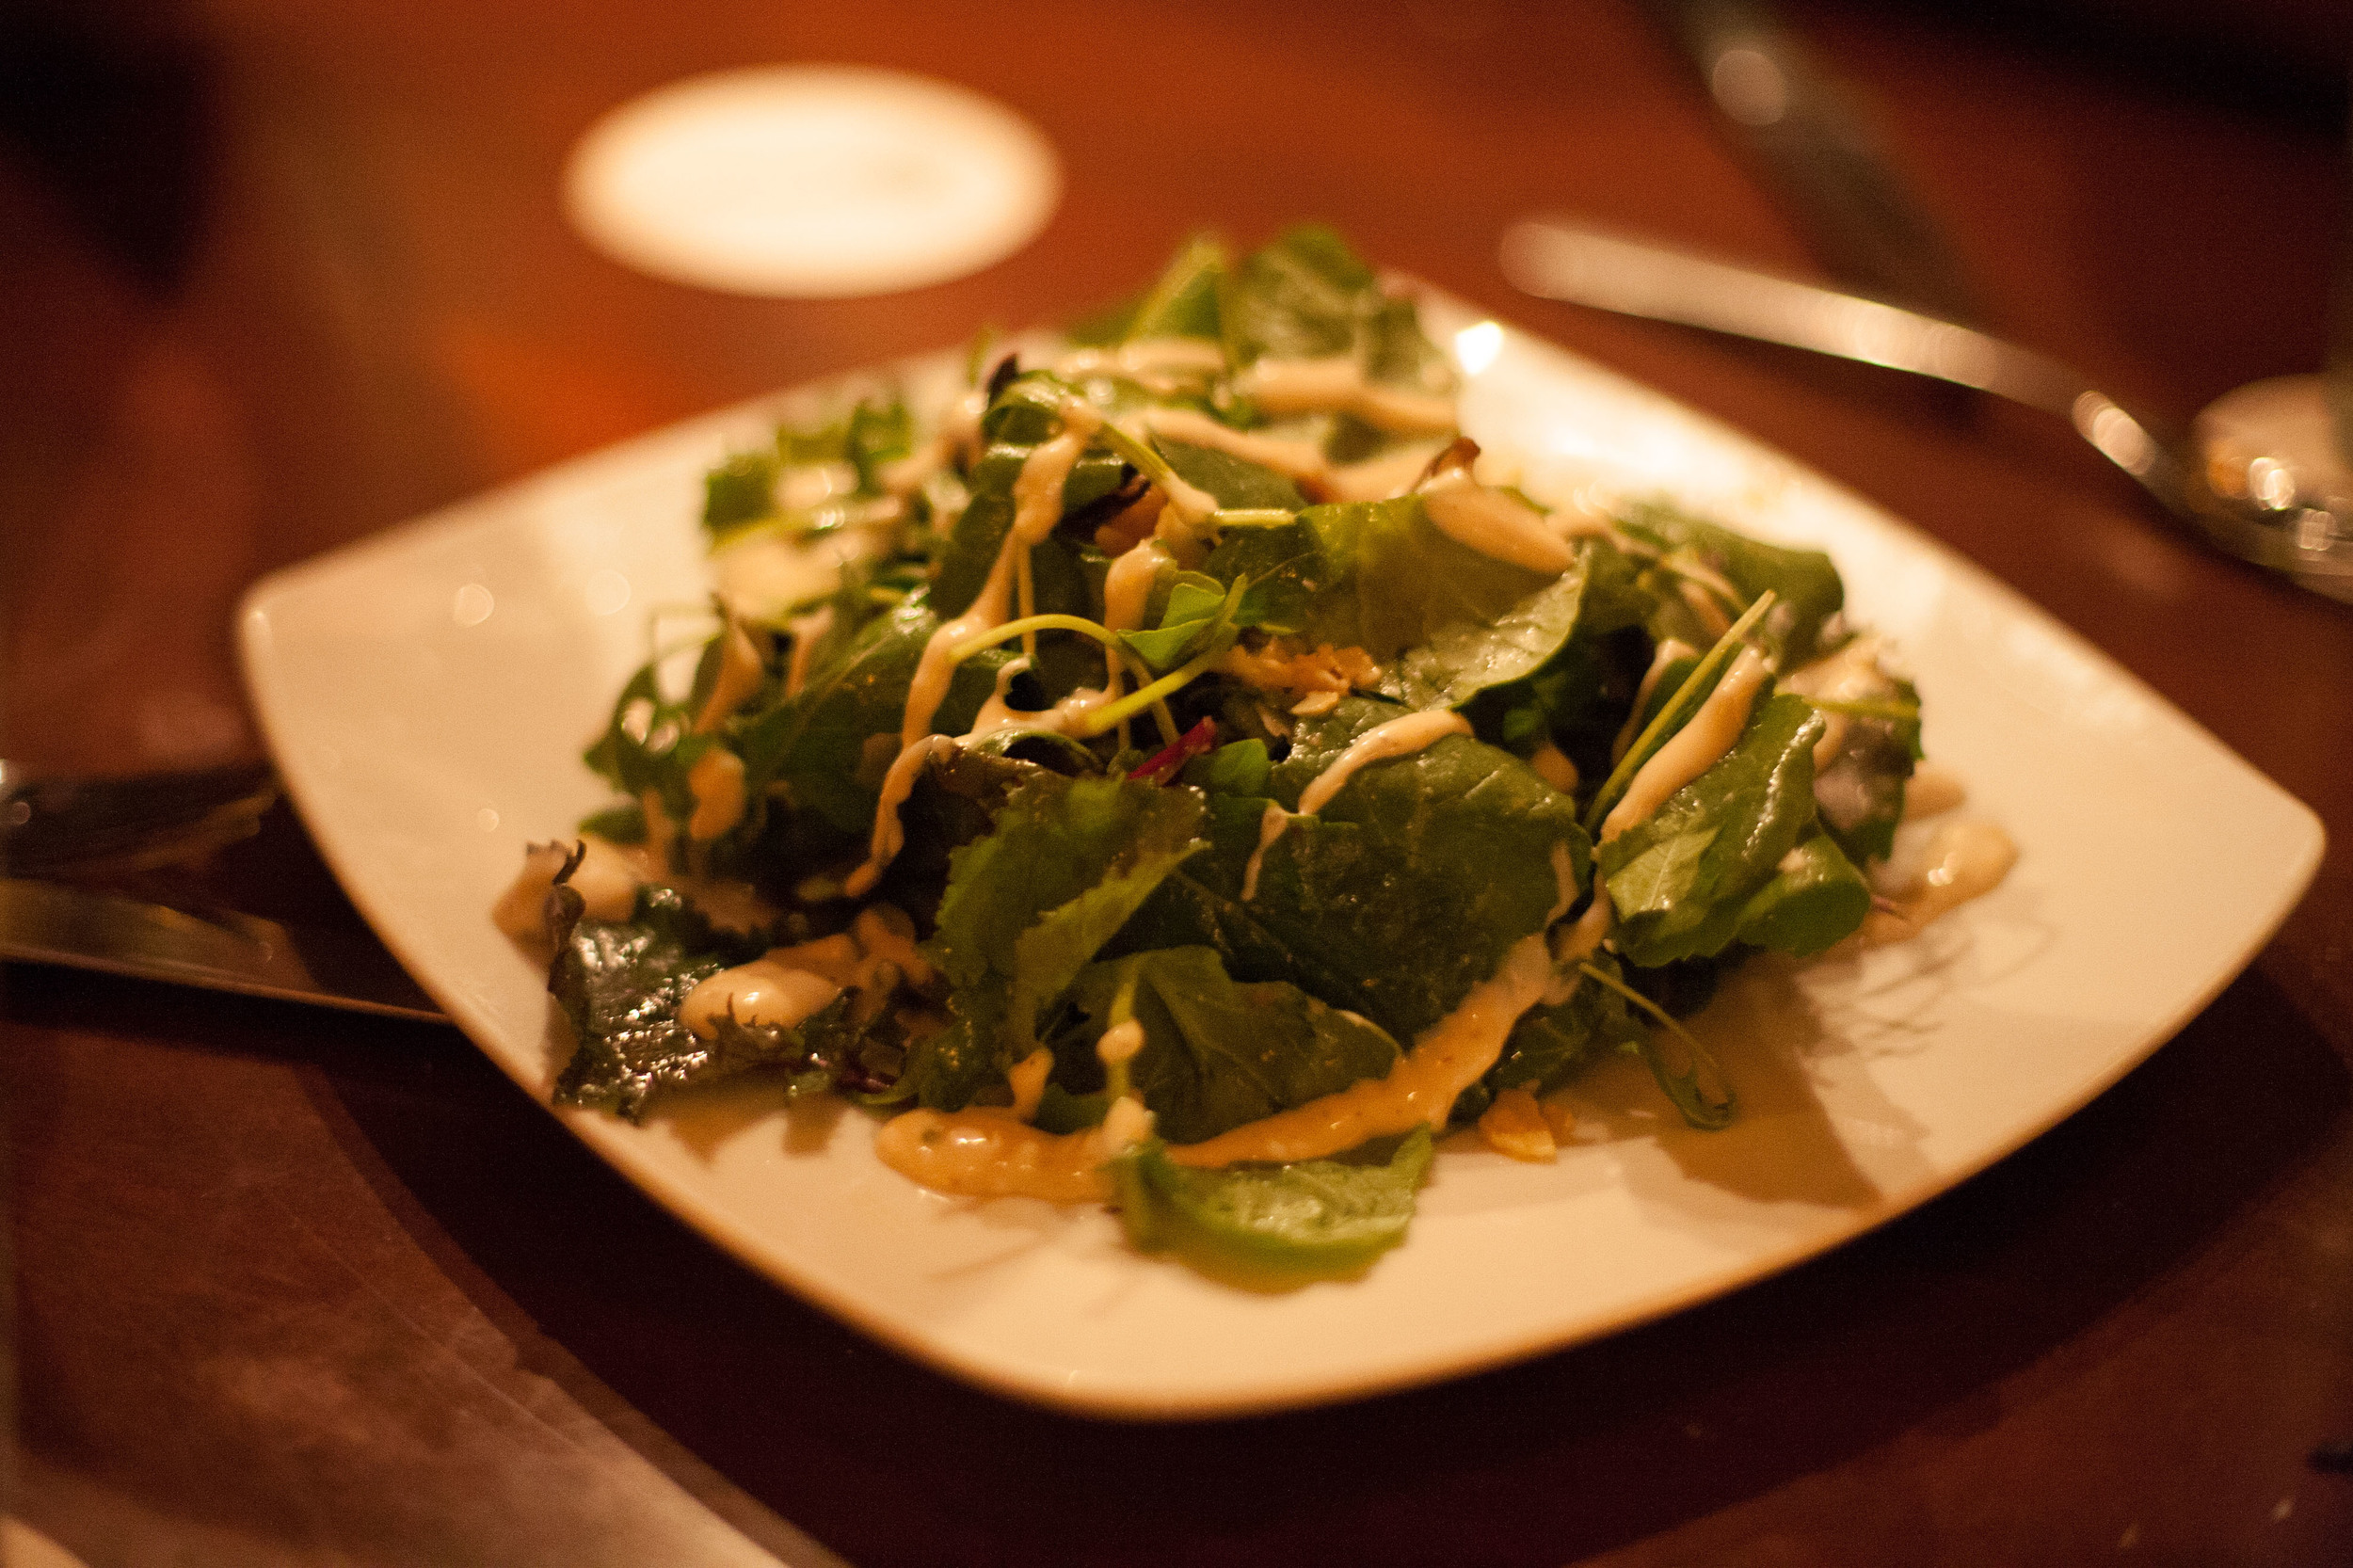 Warm Harvest Mushrooms & Arugula served with truffle dressing and shaved Parmesan cheese.